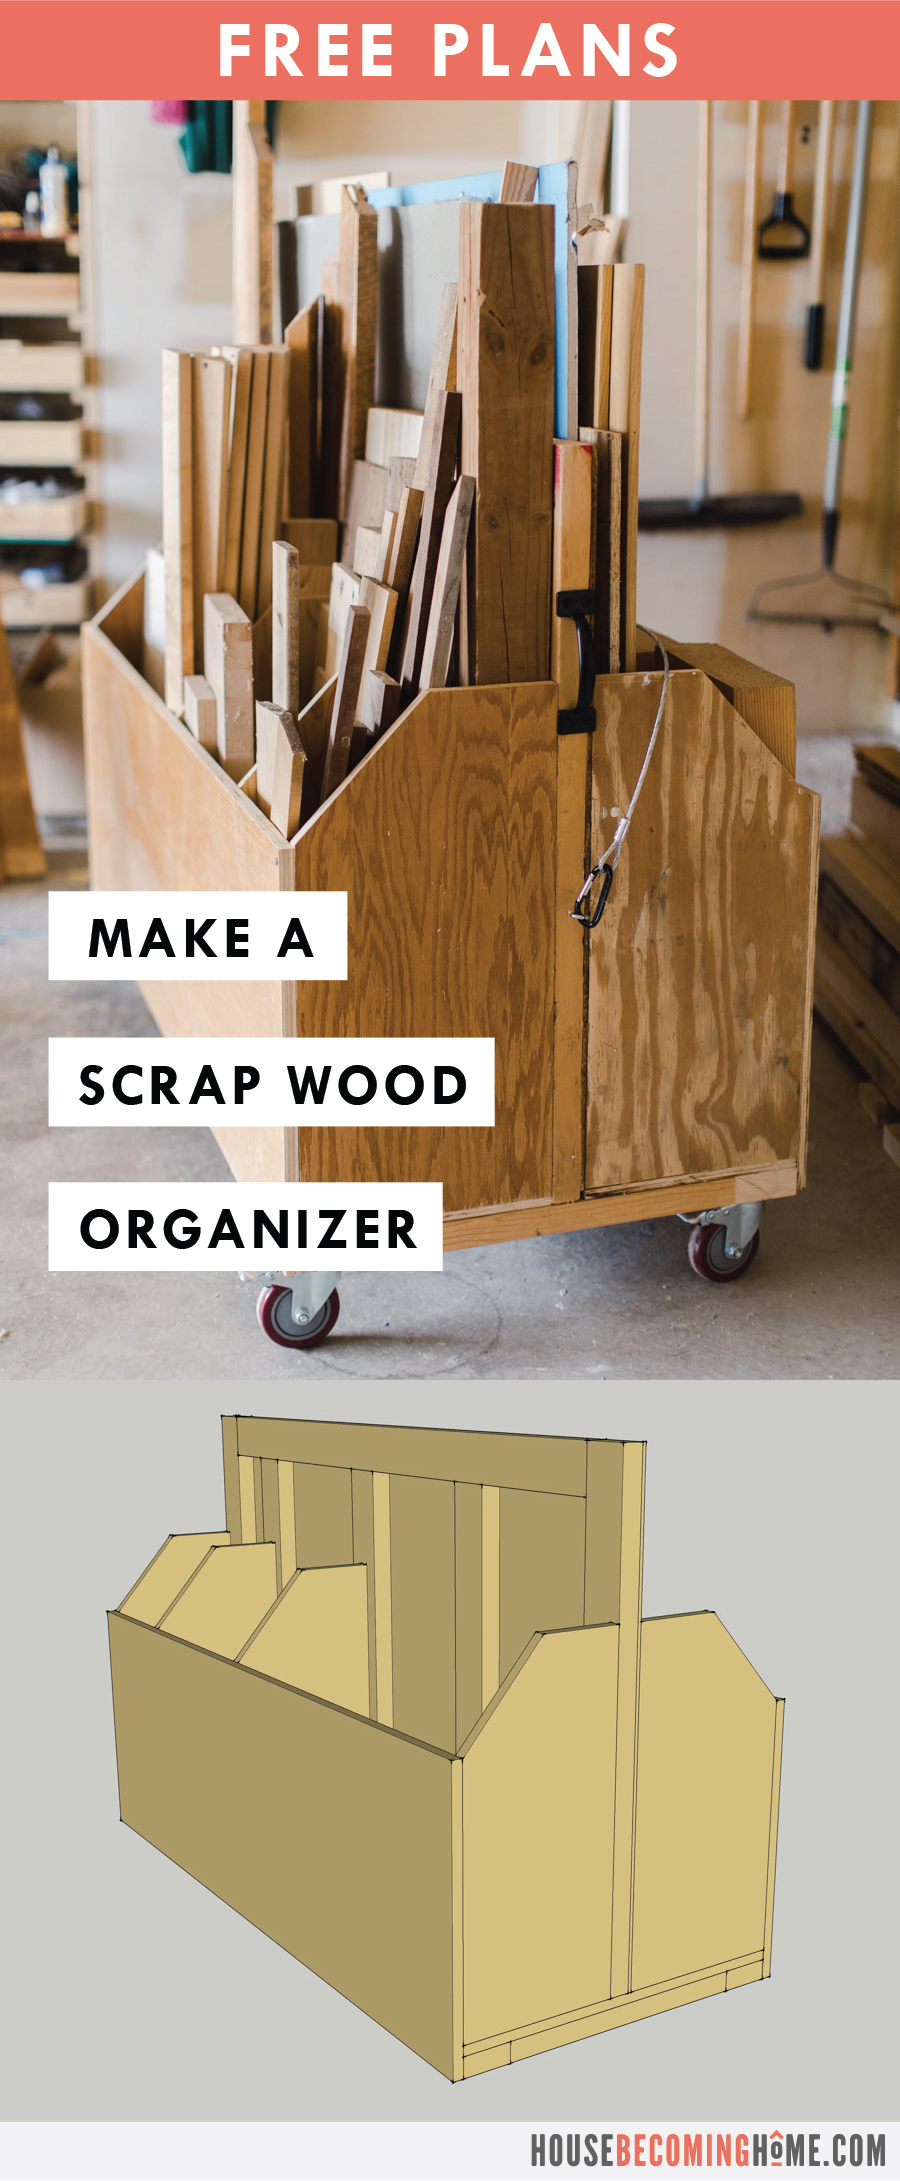 How to Build An Affordable, Simple, Mobile Cart to store and organize scrap lumber and plywood in your workshop